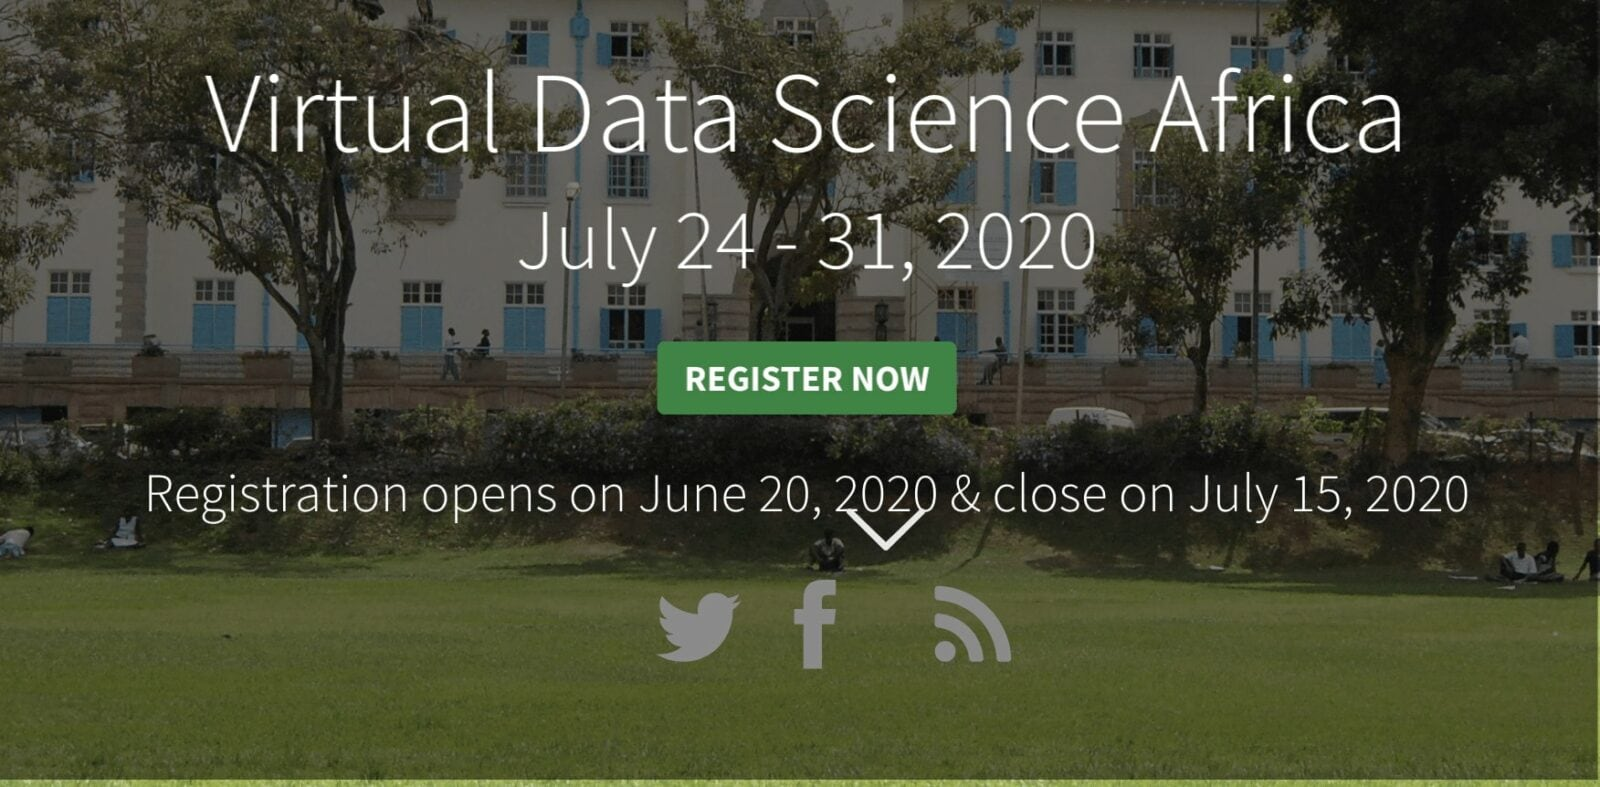 Data Science Africa 2020 128